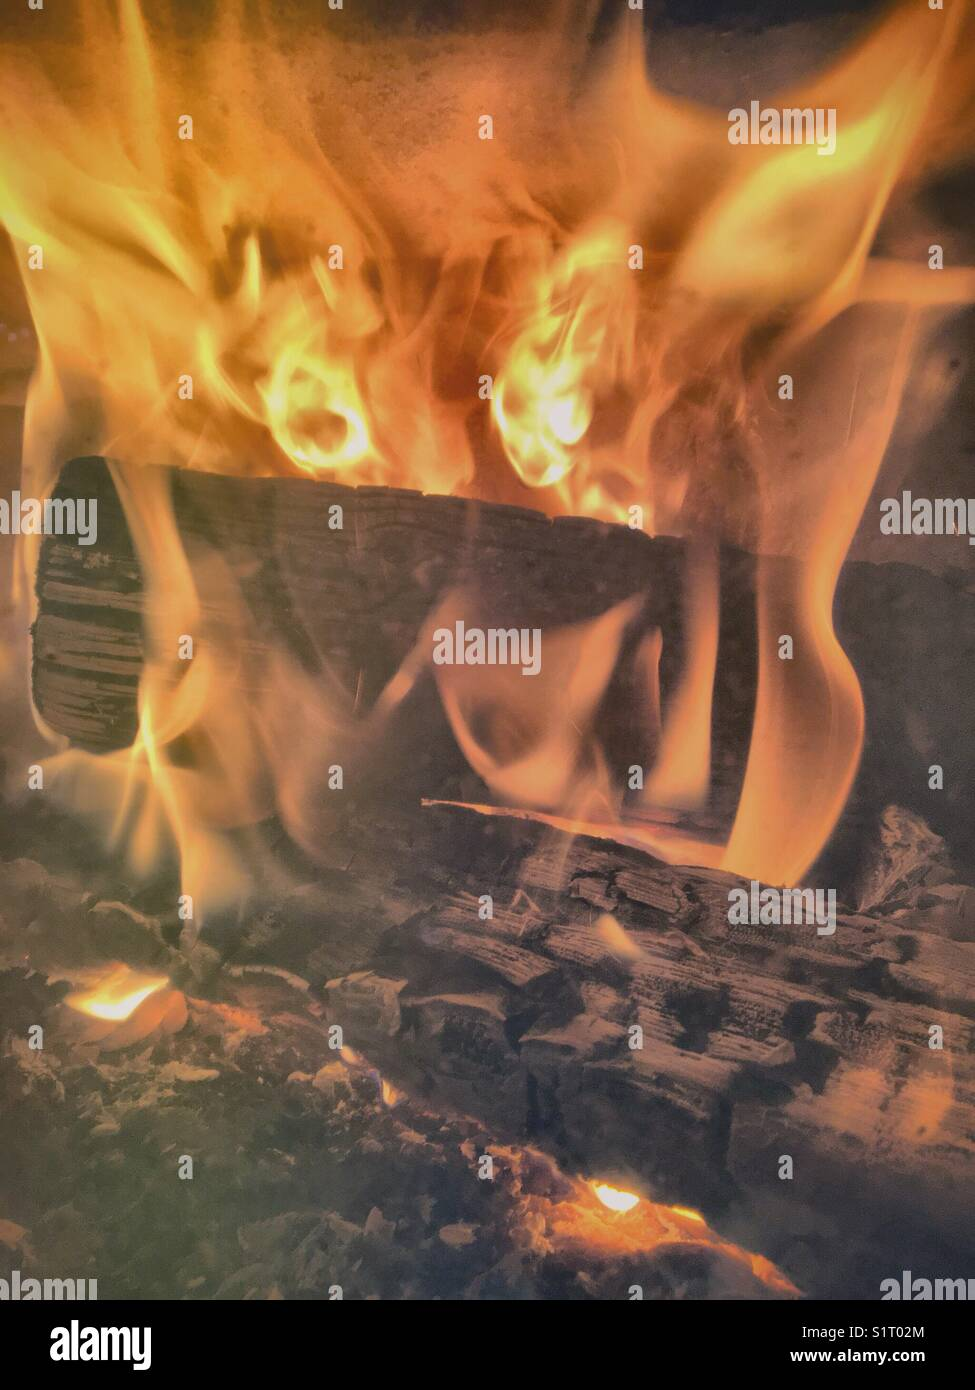 Wood burning in a fireplace. - Stock Image